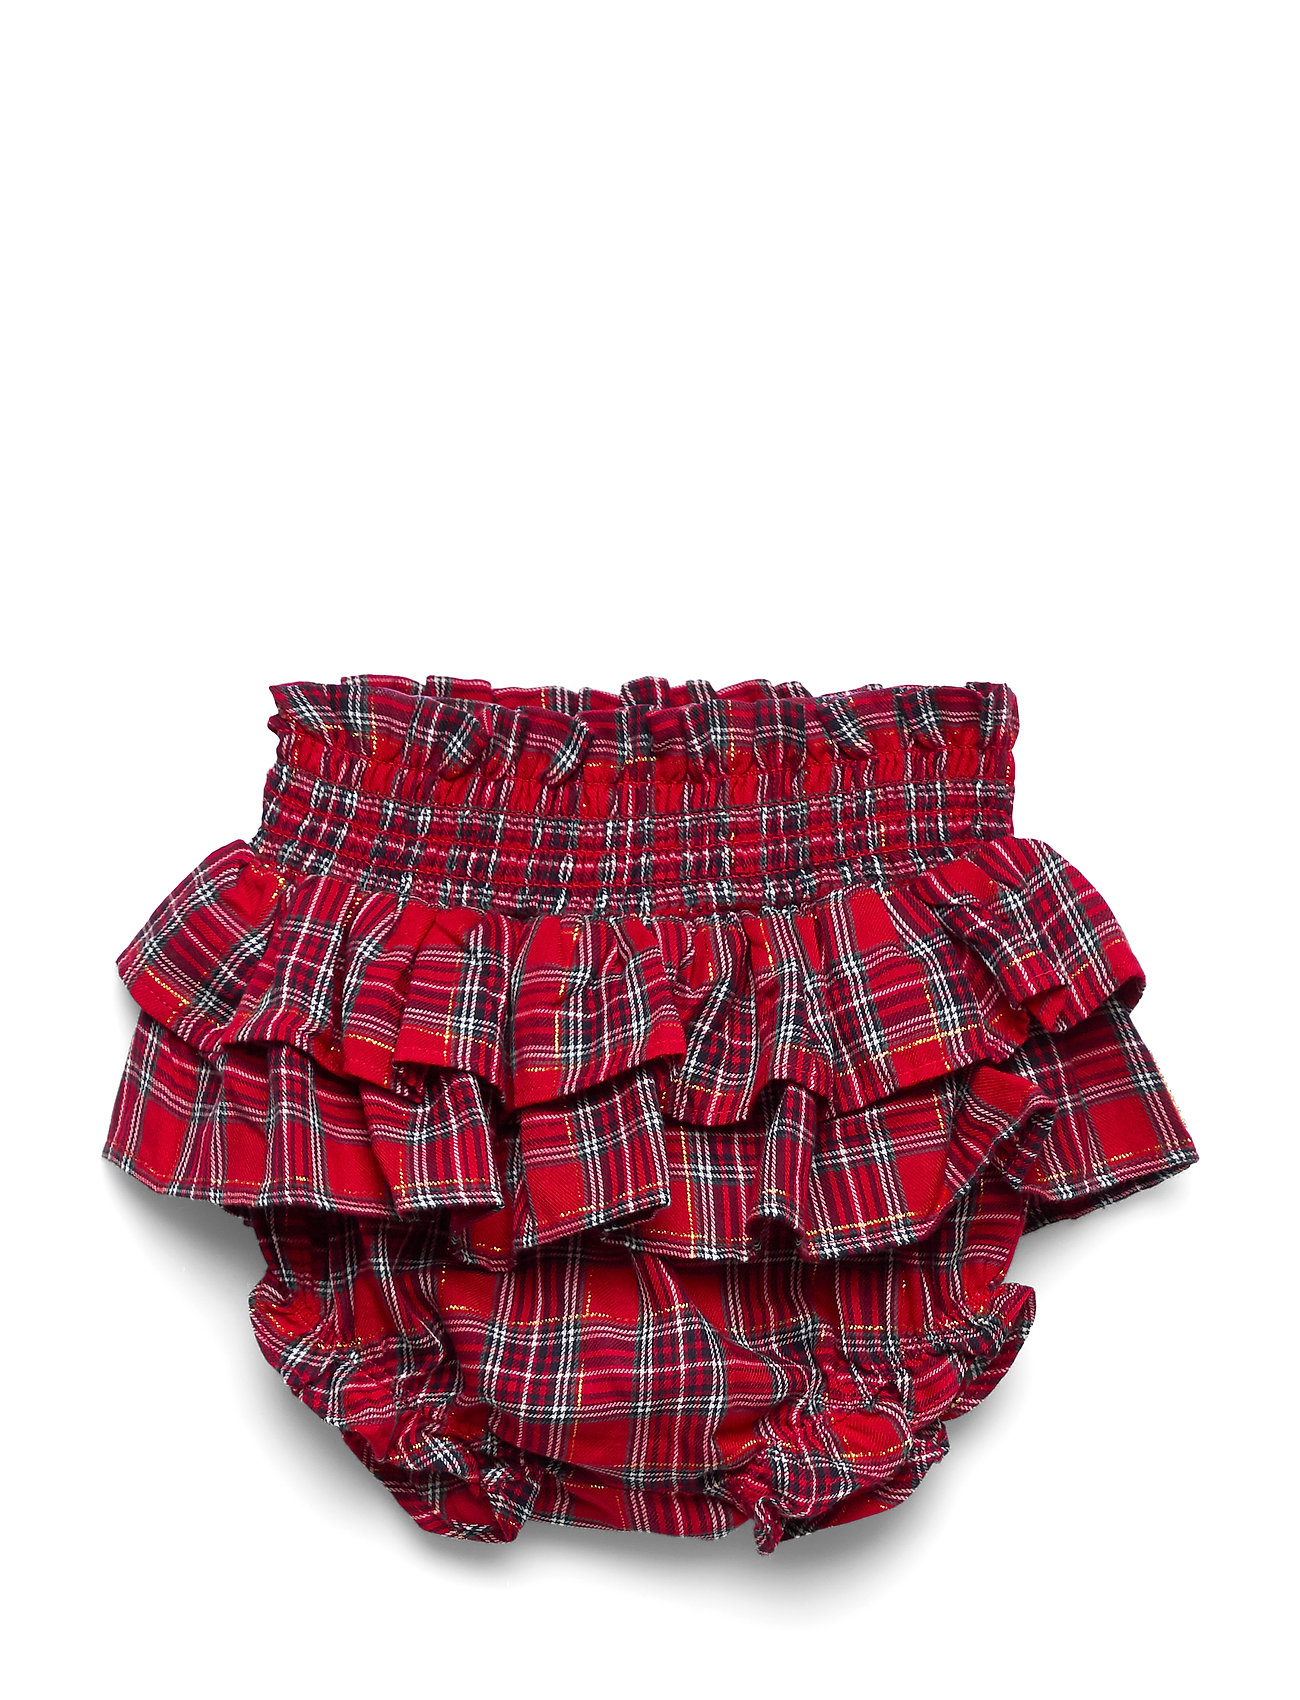 Hust & Claire Hilma - Shorts - RIO RED